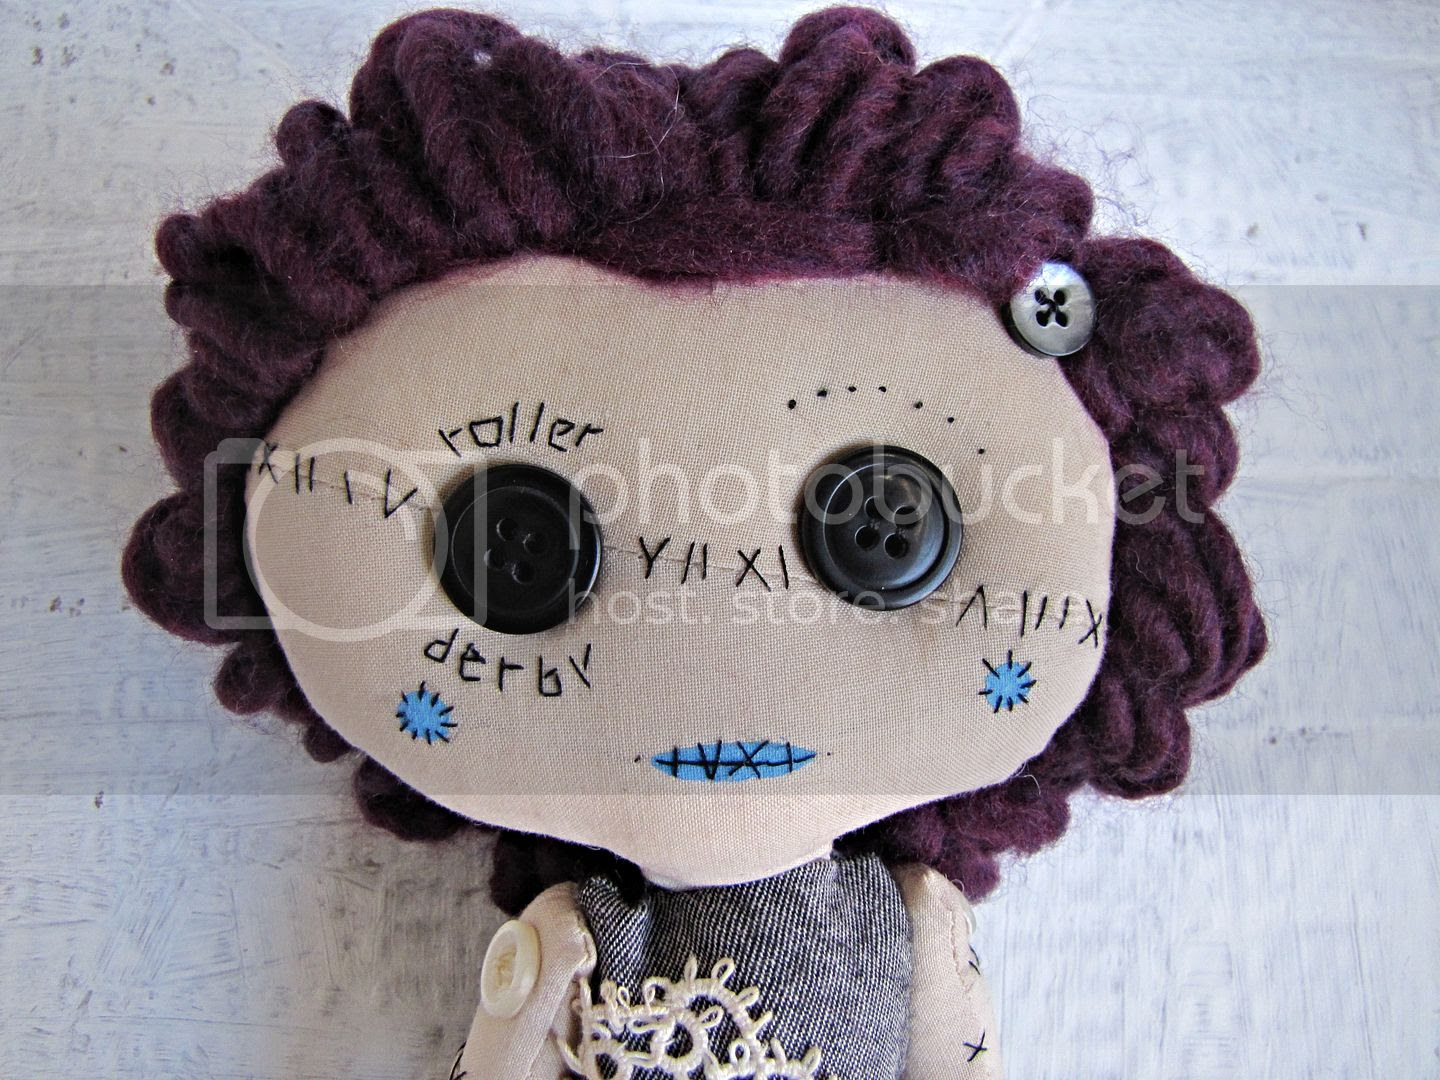 roller derby handmade doll by Indietutes photo 64190720-f870-4a1a-9a30-5e502549c375.jpg